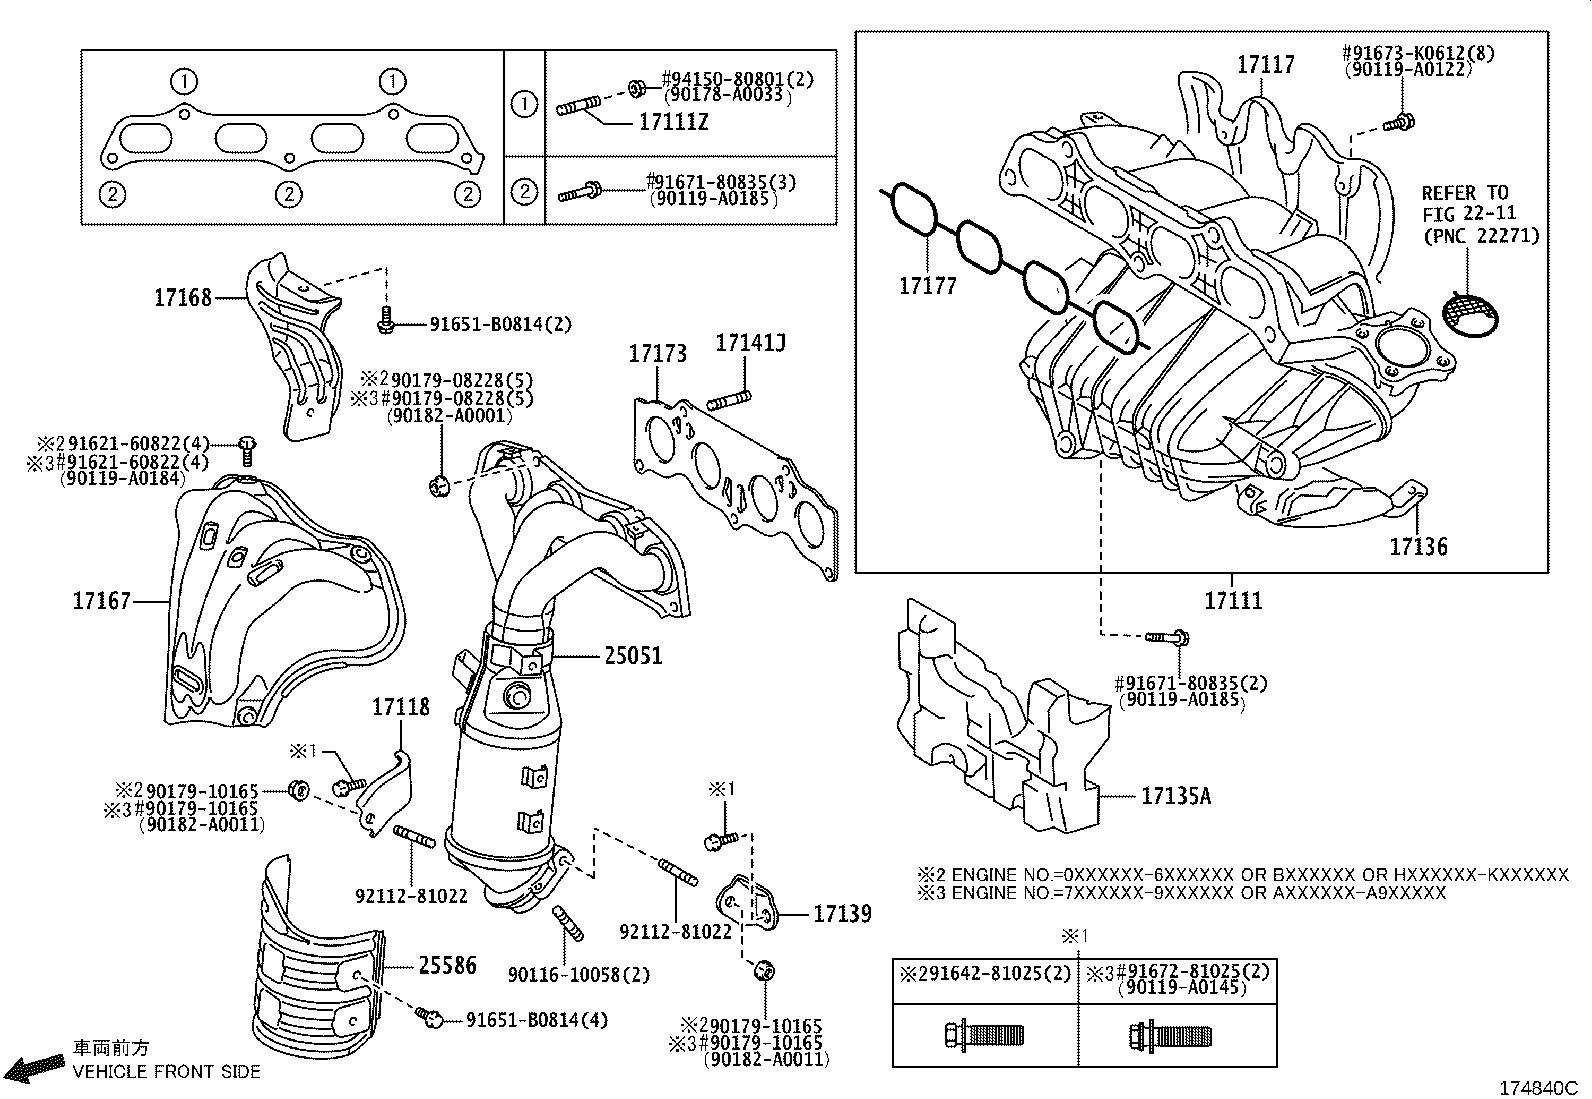 Toyota Camry Engine Intake Manifold Gasket Exhaust